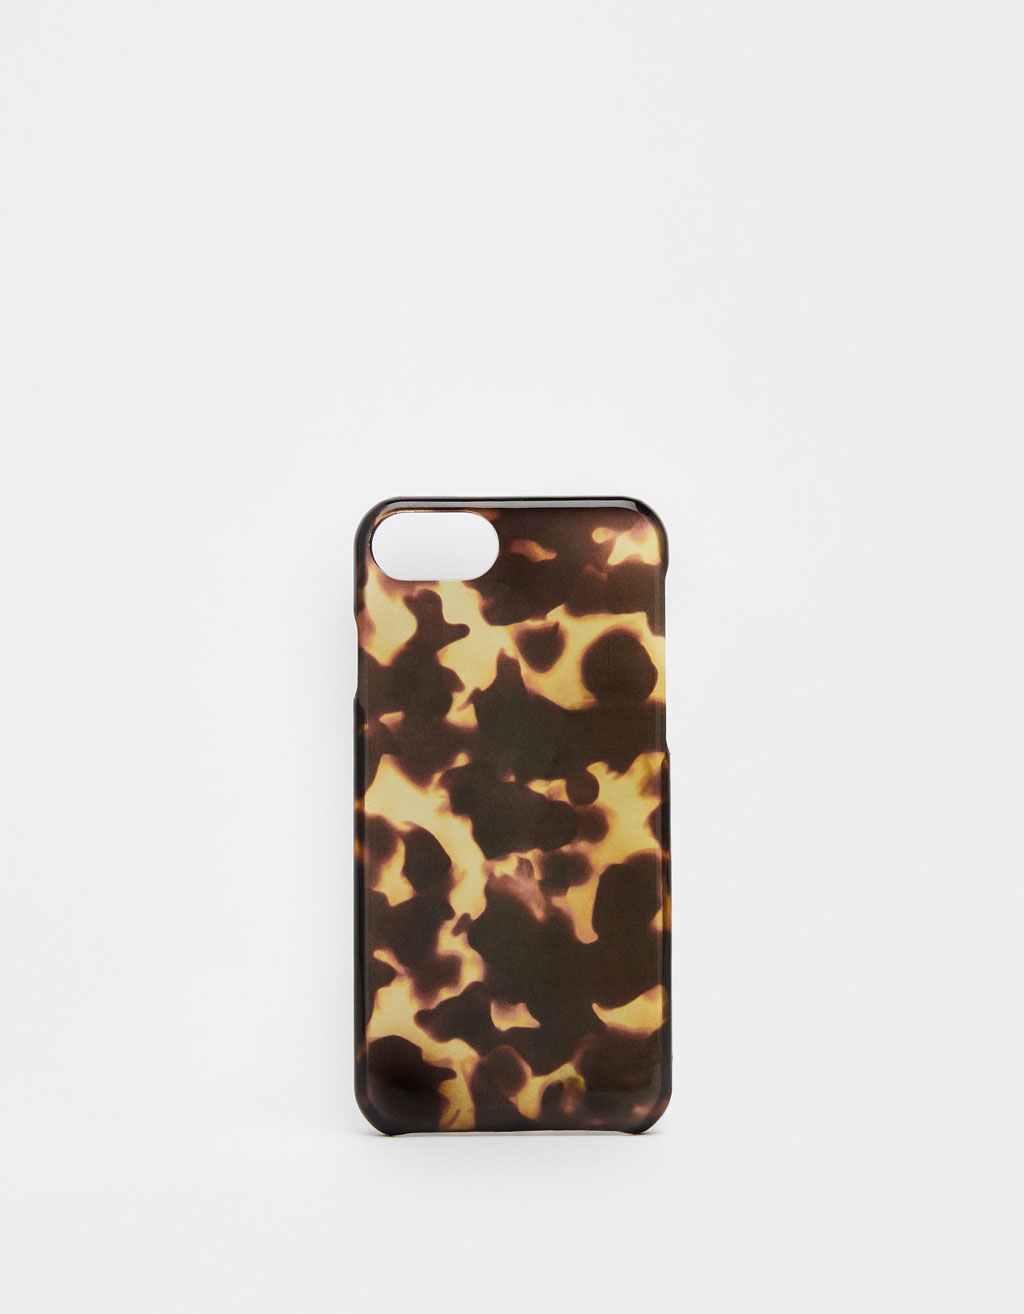 iPhone 6 / 6S / 7 / 8 case